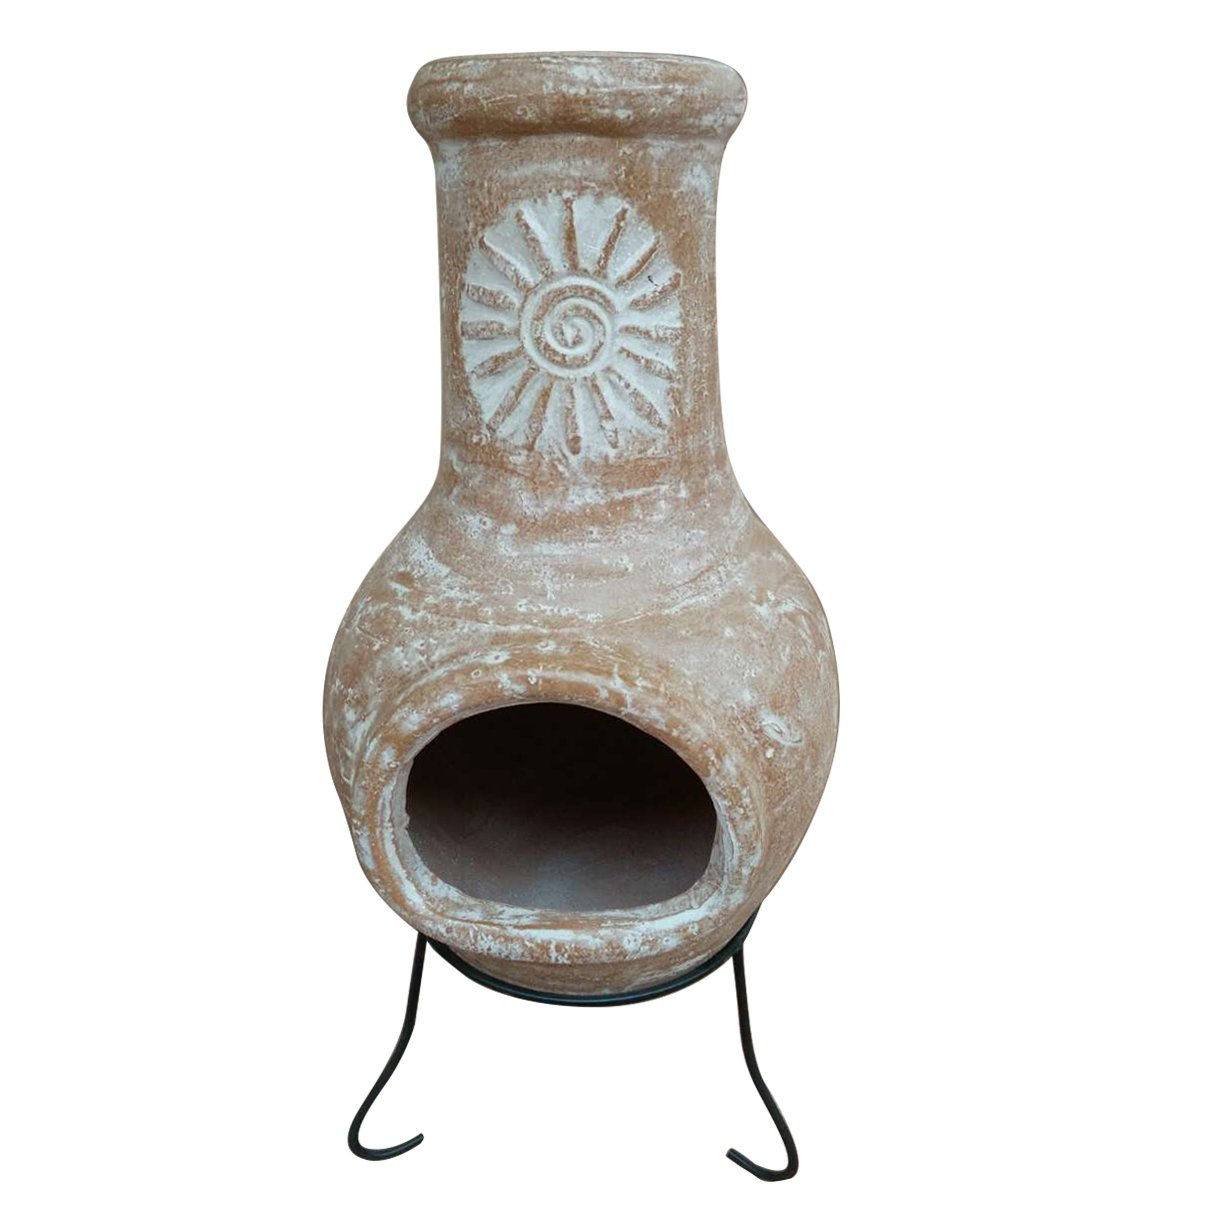 Charles Bentley Garden Outdoor Medium Natural Clay Chiminea Mexican Chiminea Patio Heater